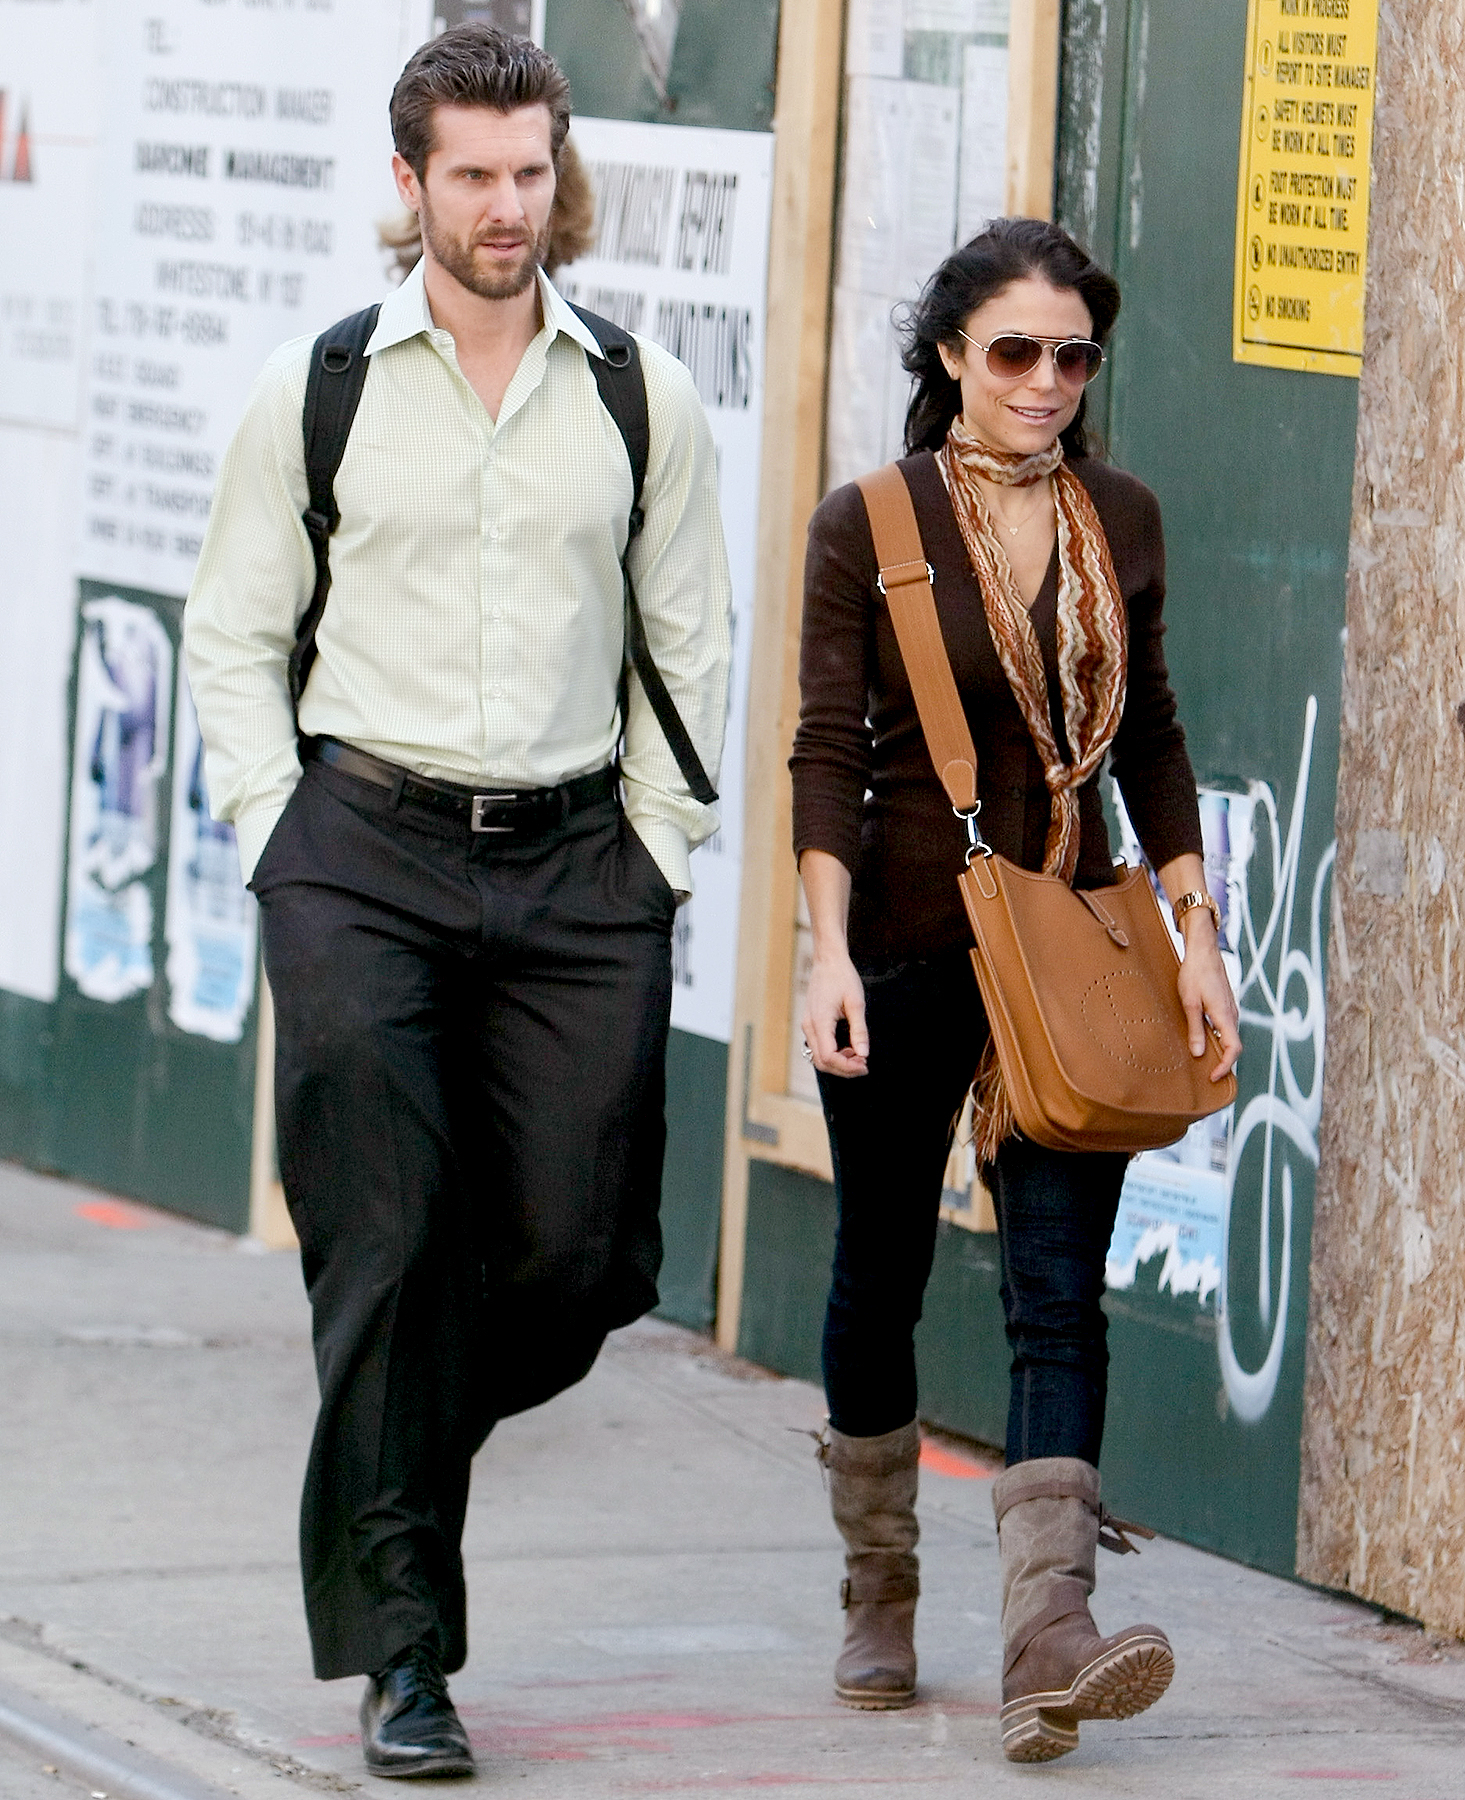 Sale News And Shopping Details March 2012: Bethenny Frankel's Ex Jason Hoppy Facing More Stalking Charges